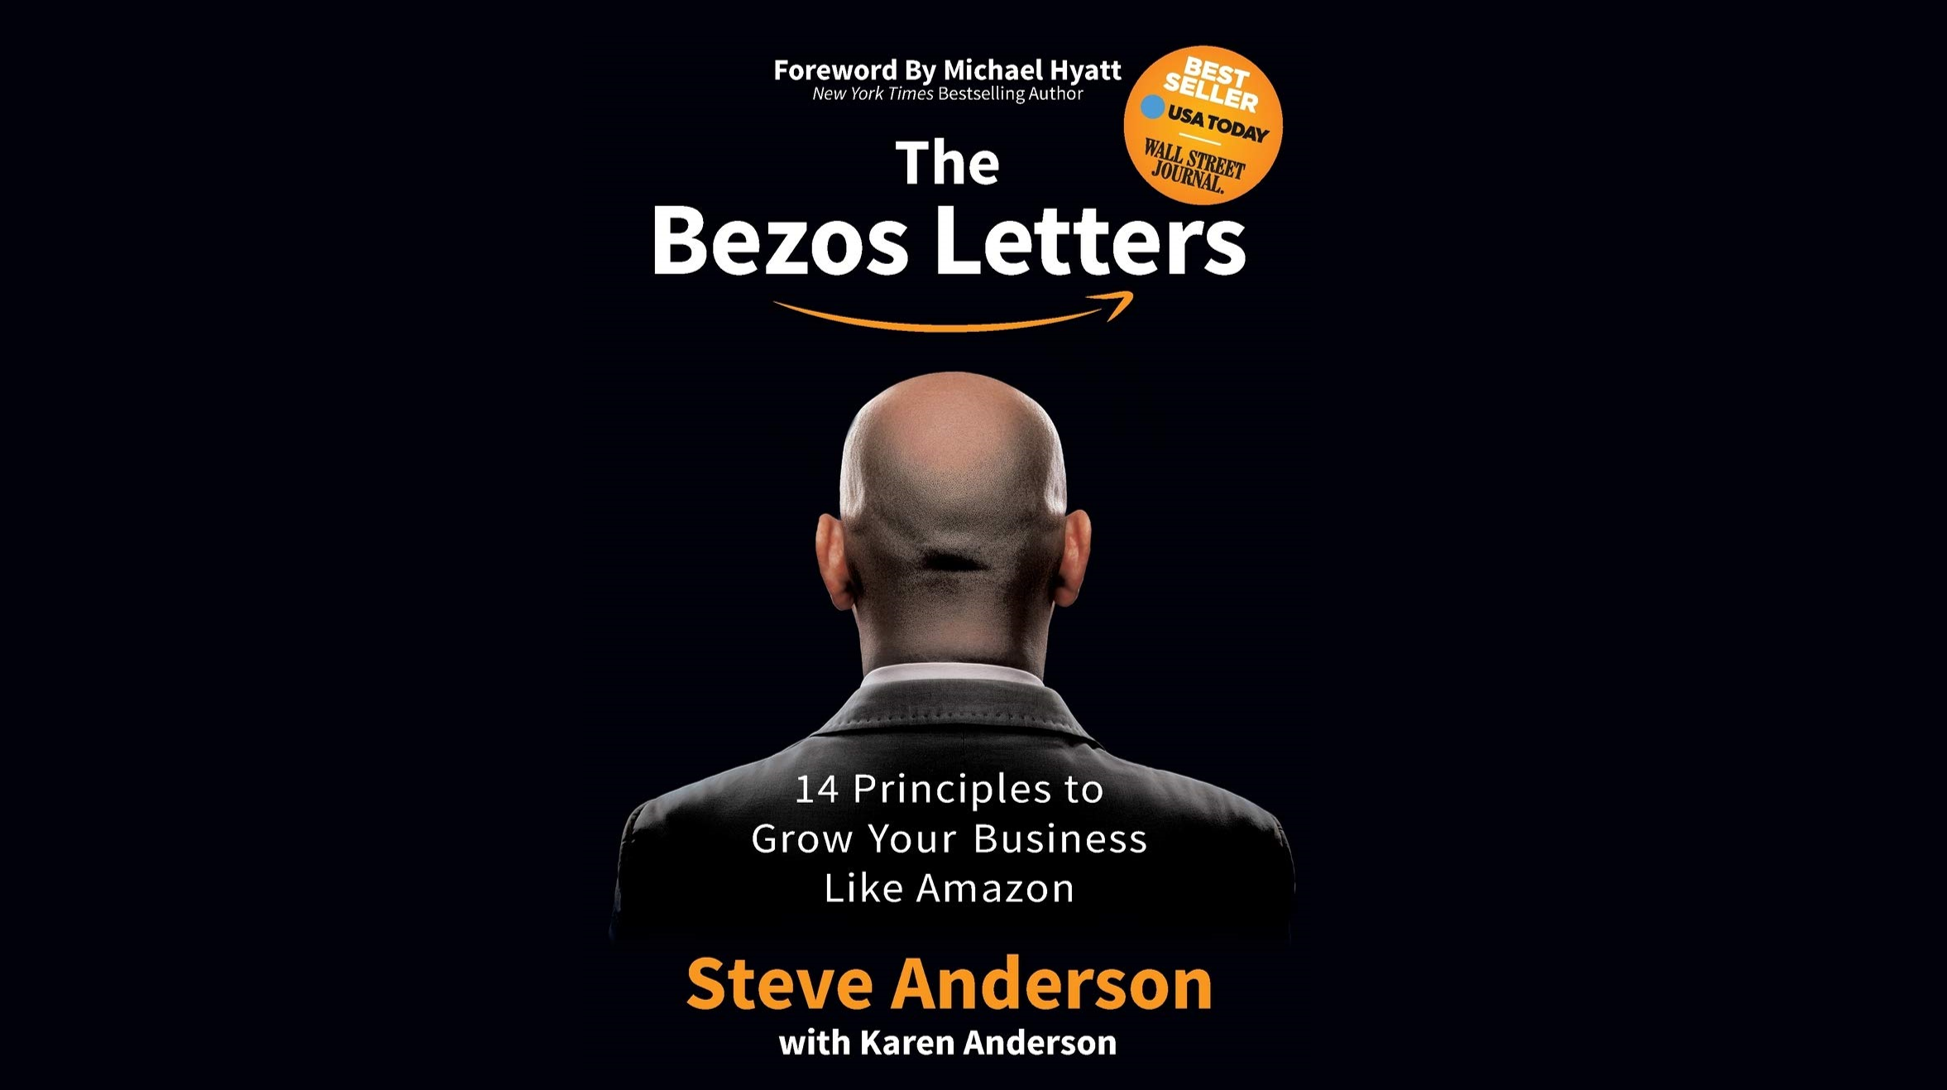 Summary: The Bezos Letters by Steve Anderson